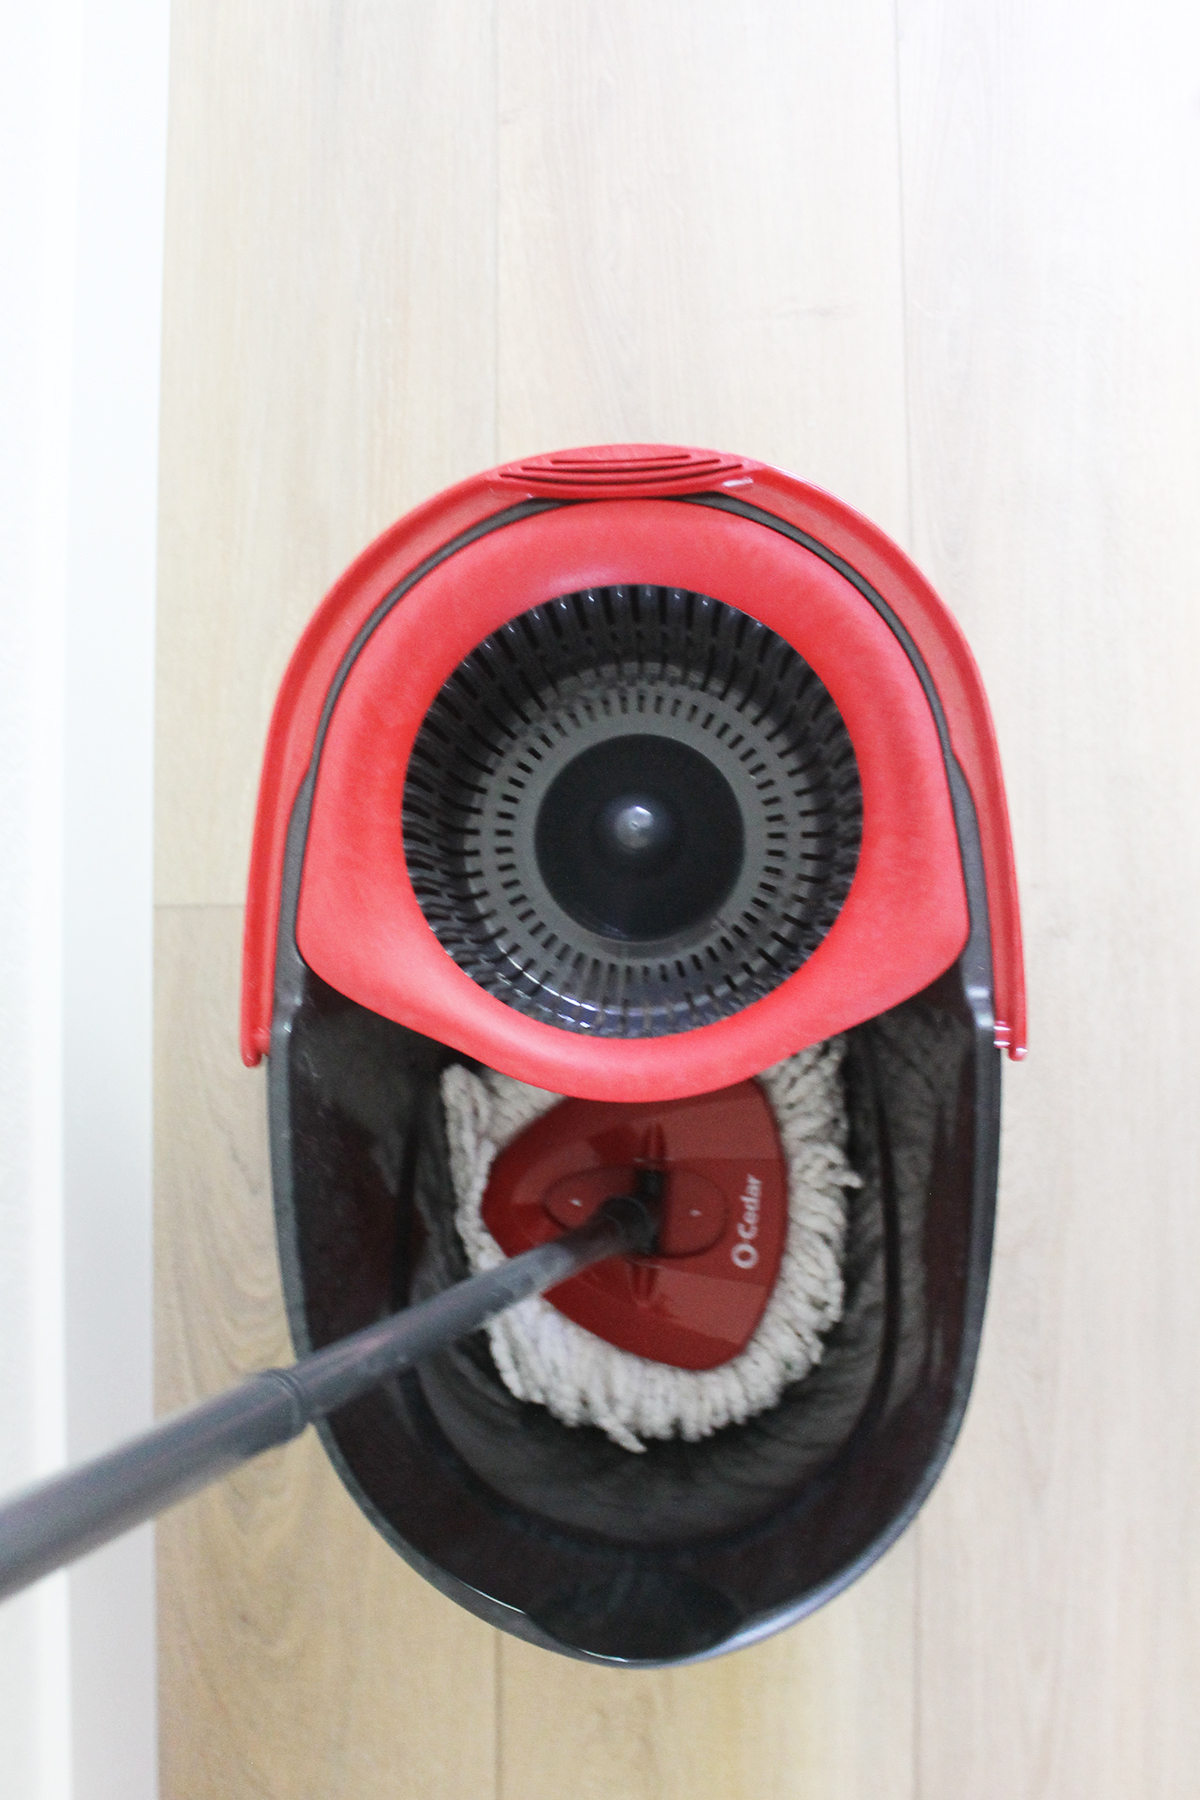 The Best Spin Mops on the Market